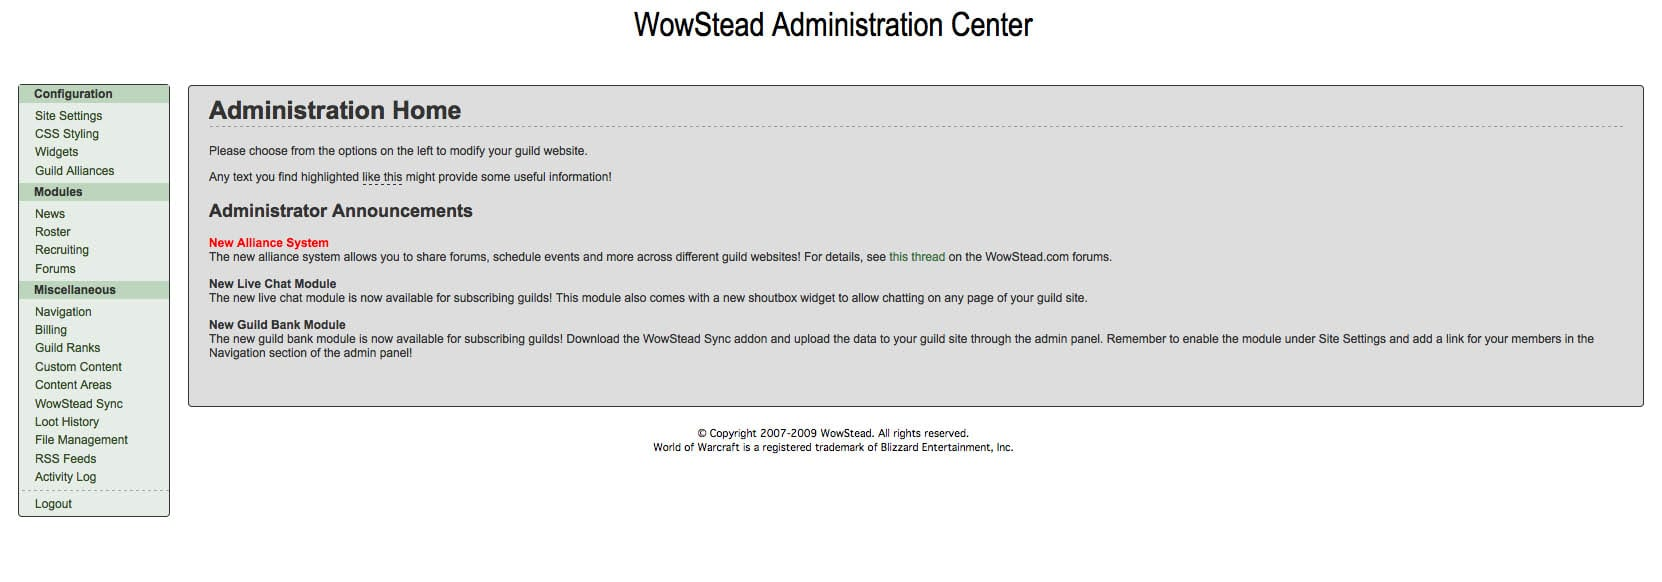 wowstead_11